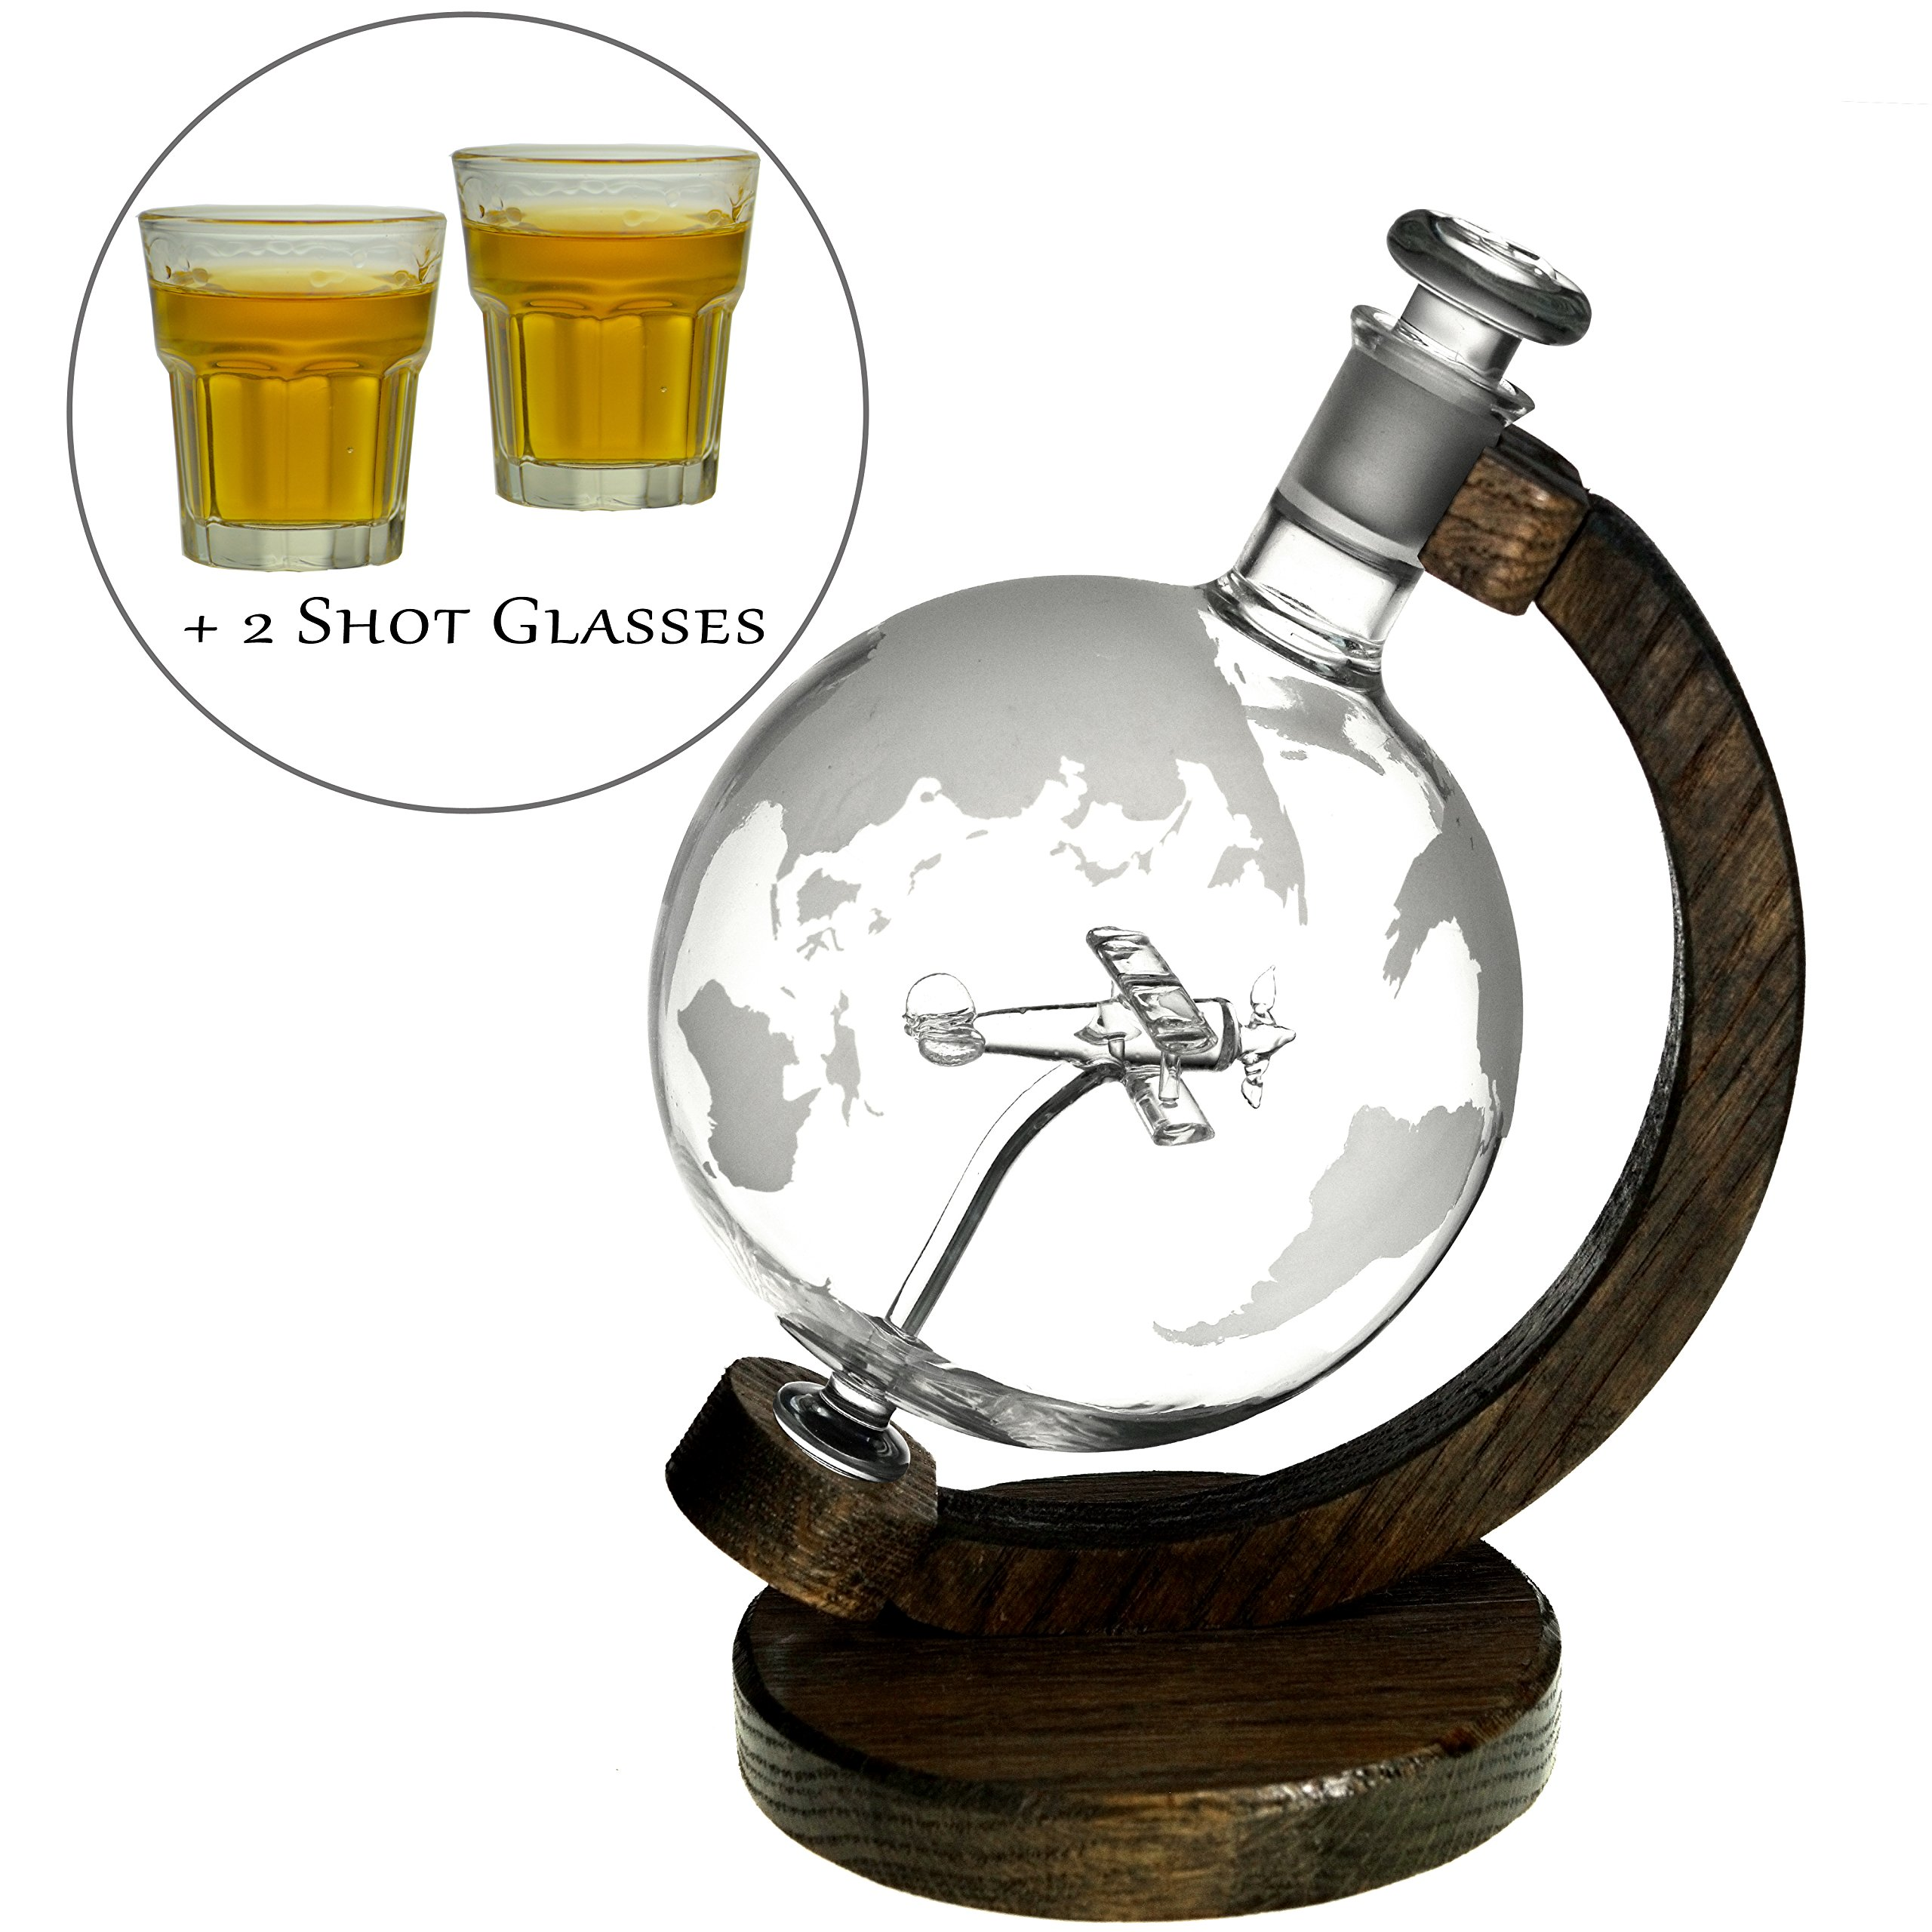 Etched Globe Liquor Decanter - Scotch Whiskey Decanter - 1000ml Glass Decanter for Alcohol - Vodka, Bourbon, Rum, Wine, Tequila or Even Mouthwash - Sopwith Camel 1000ml Shot Glass Bundle